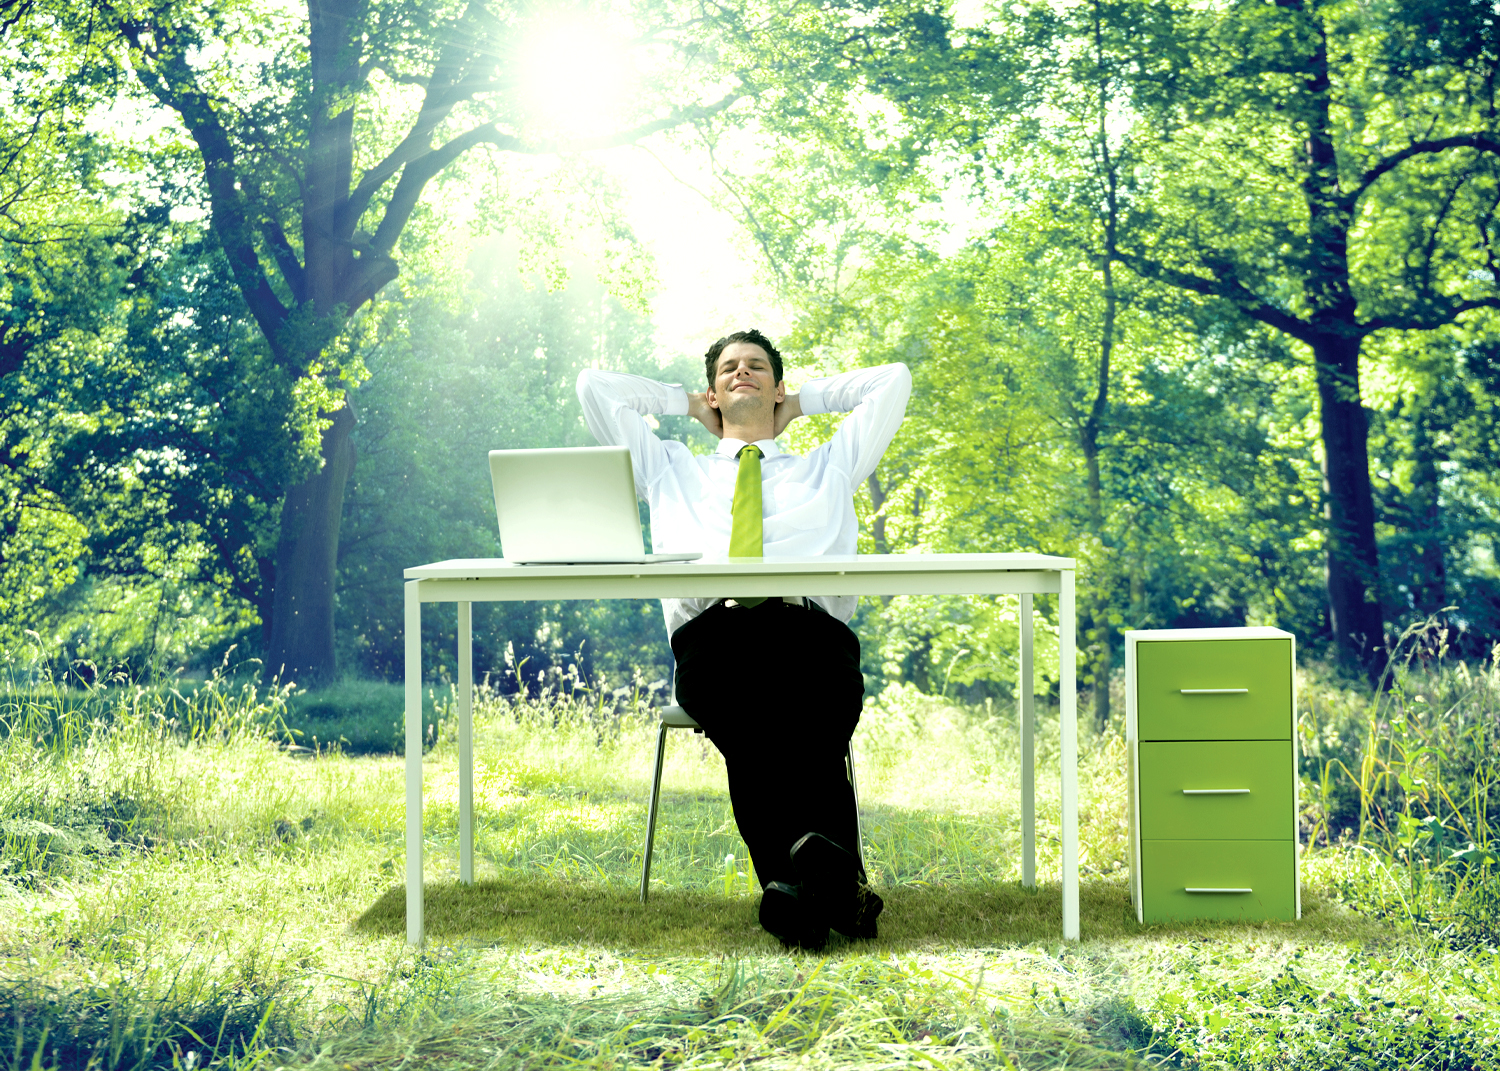 A man with a desk in the woods